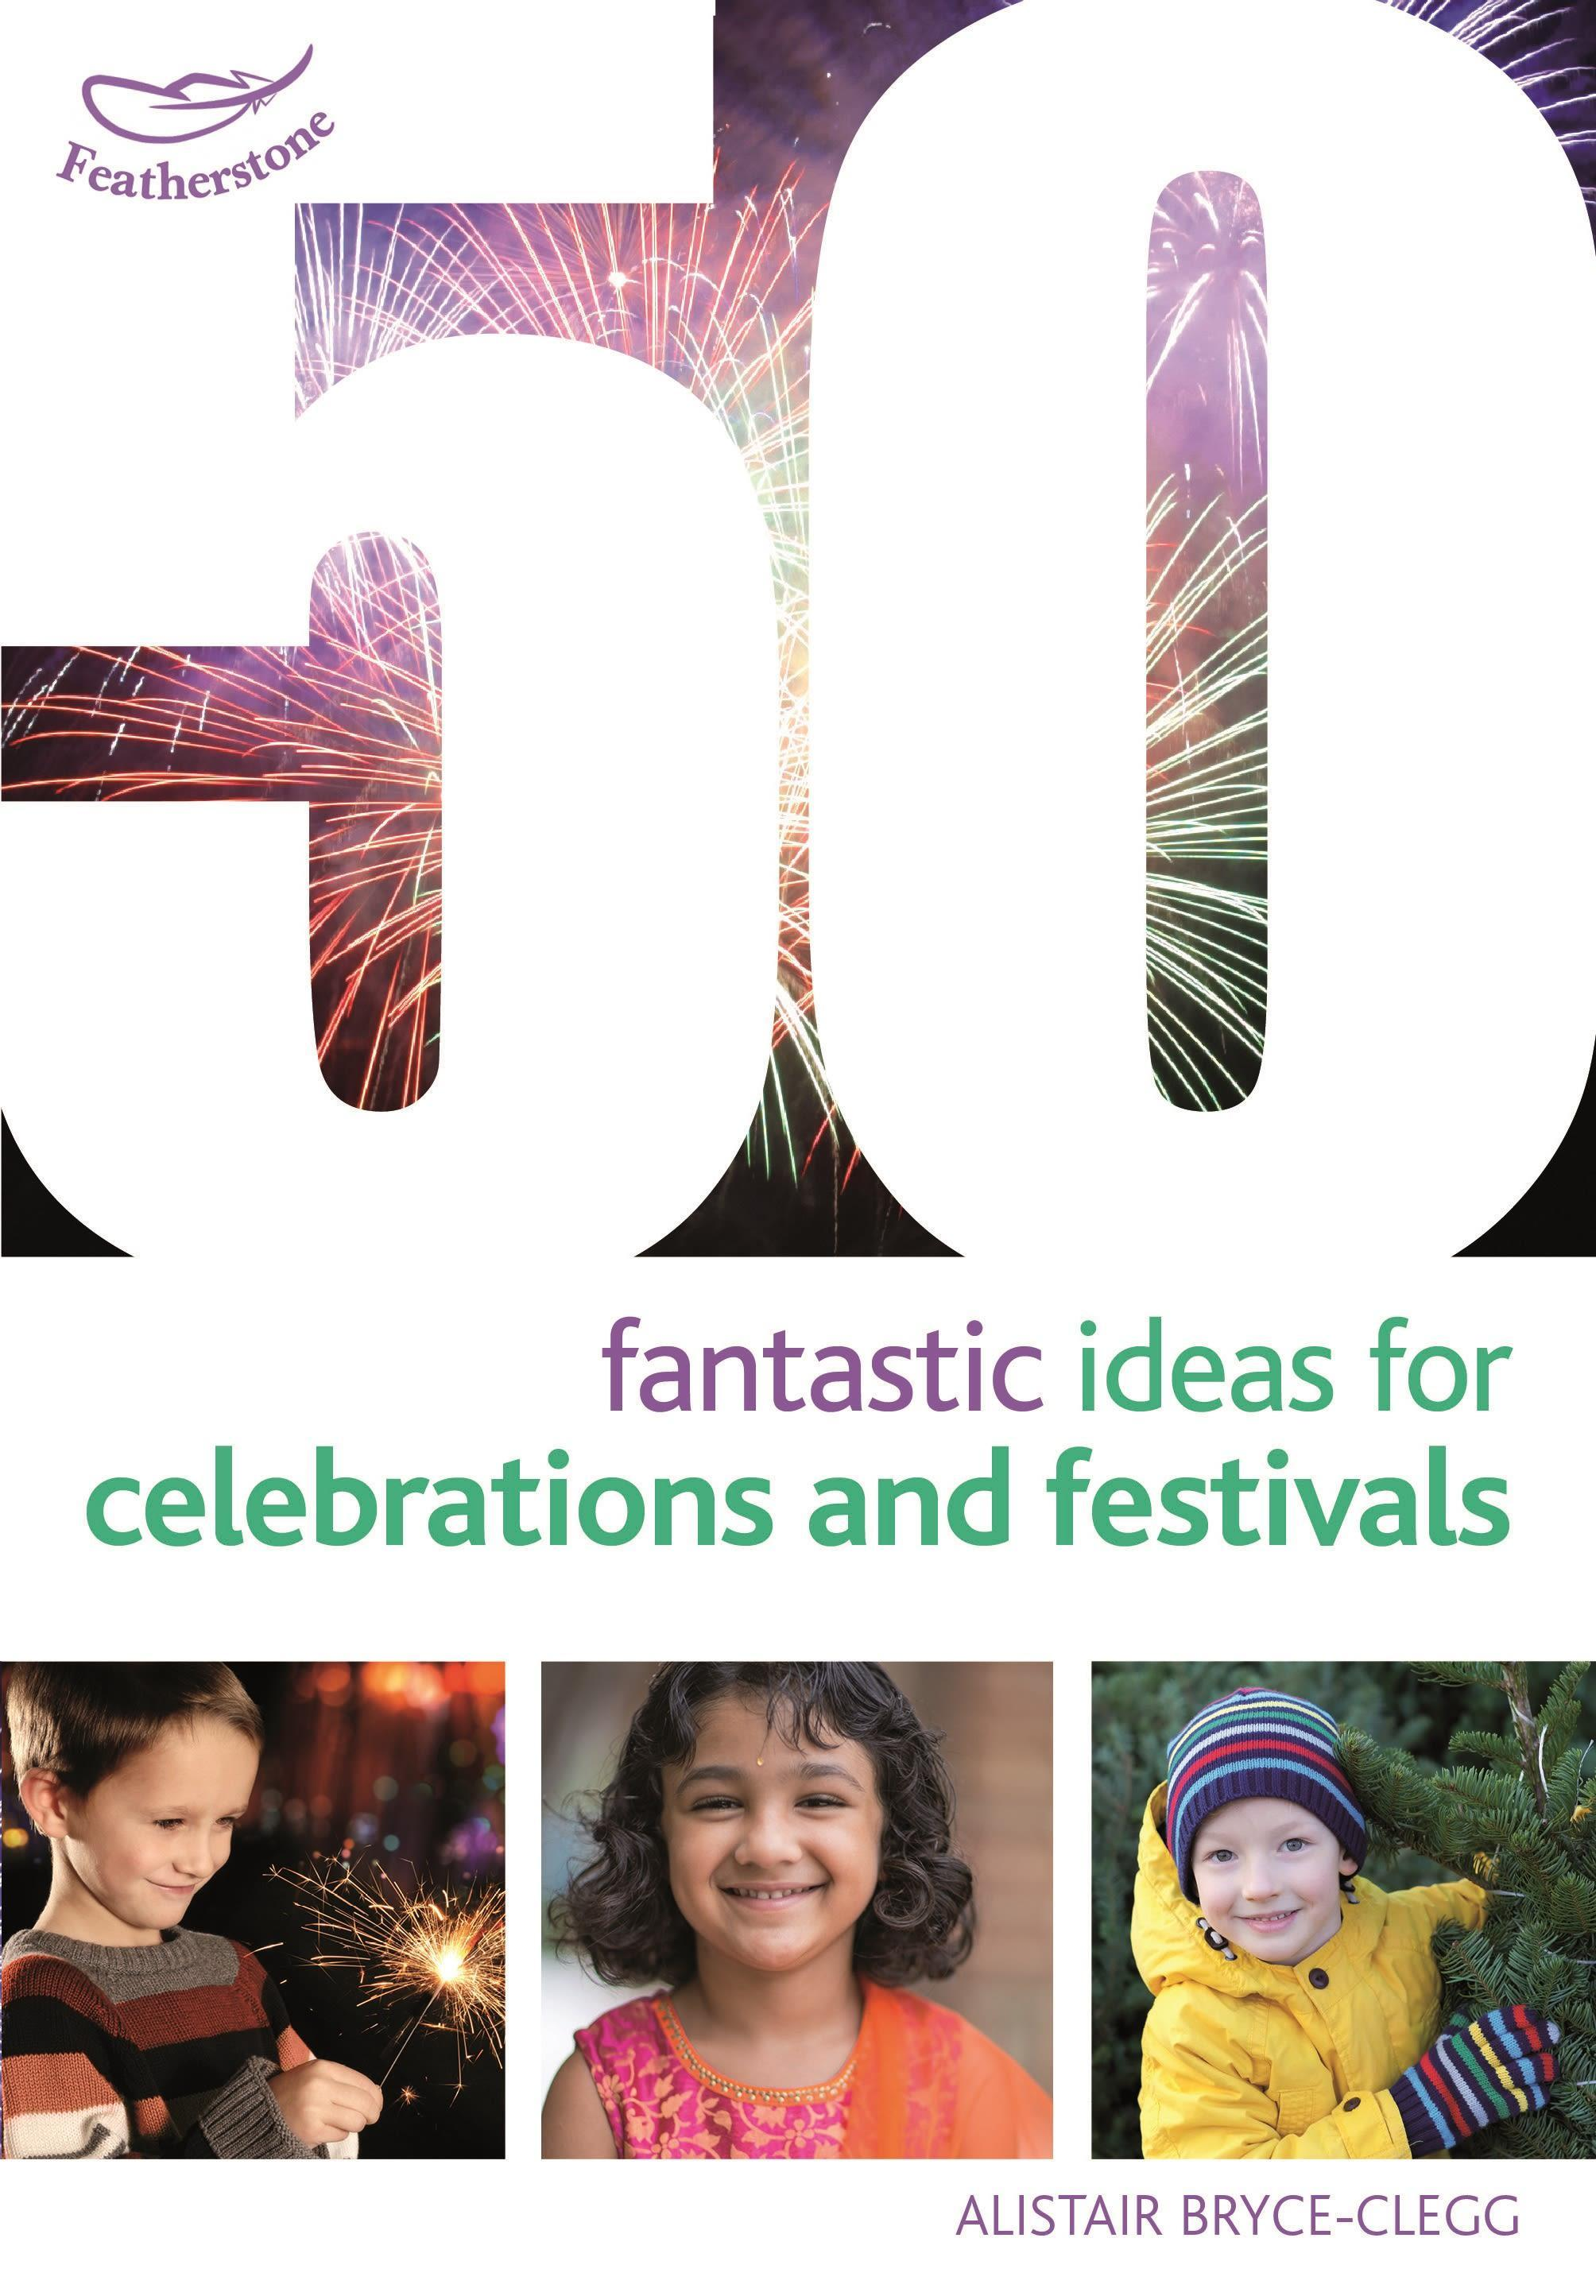 50 Fantastic Ideas for Celebrations and Festivals Alistair Bryce-Clegg